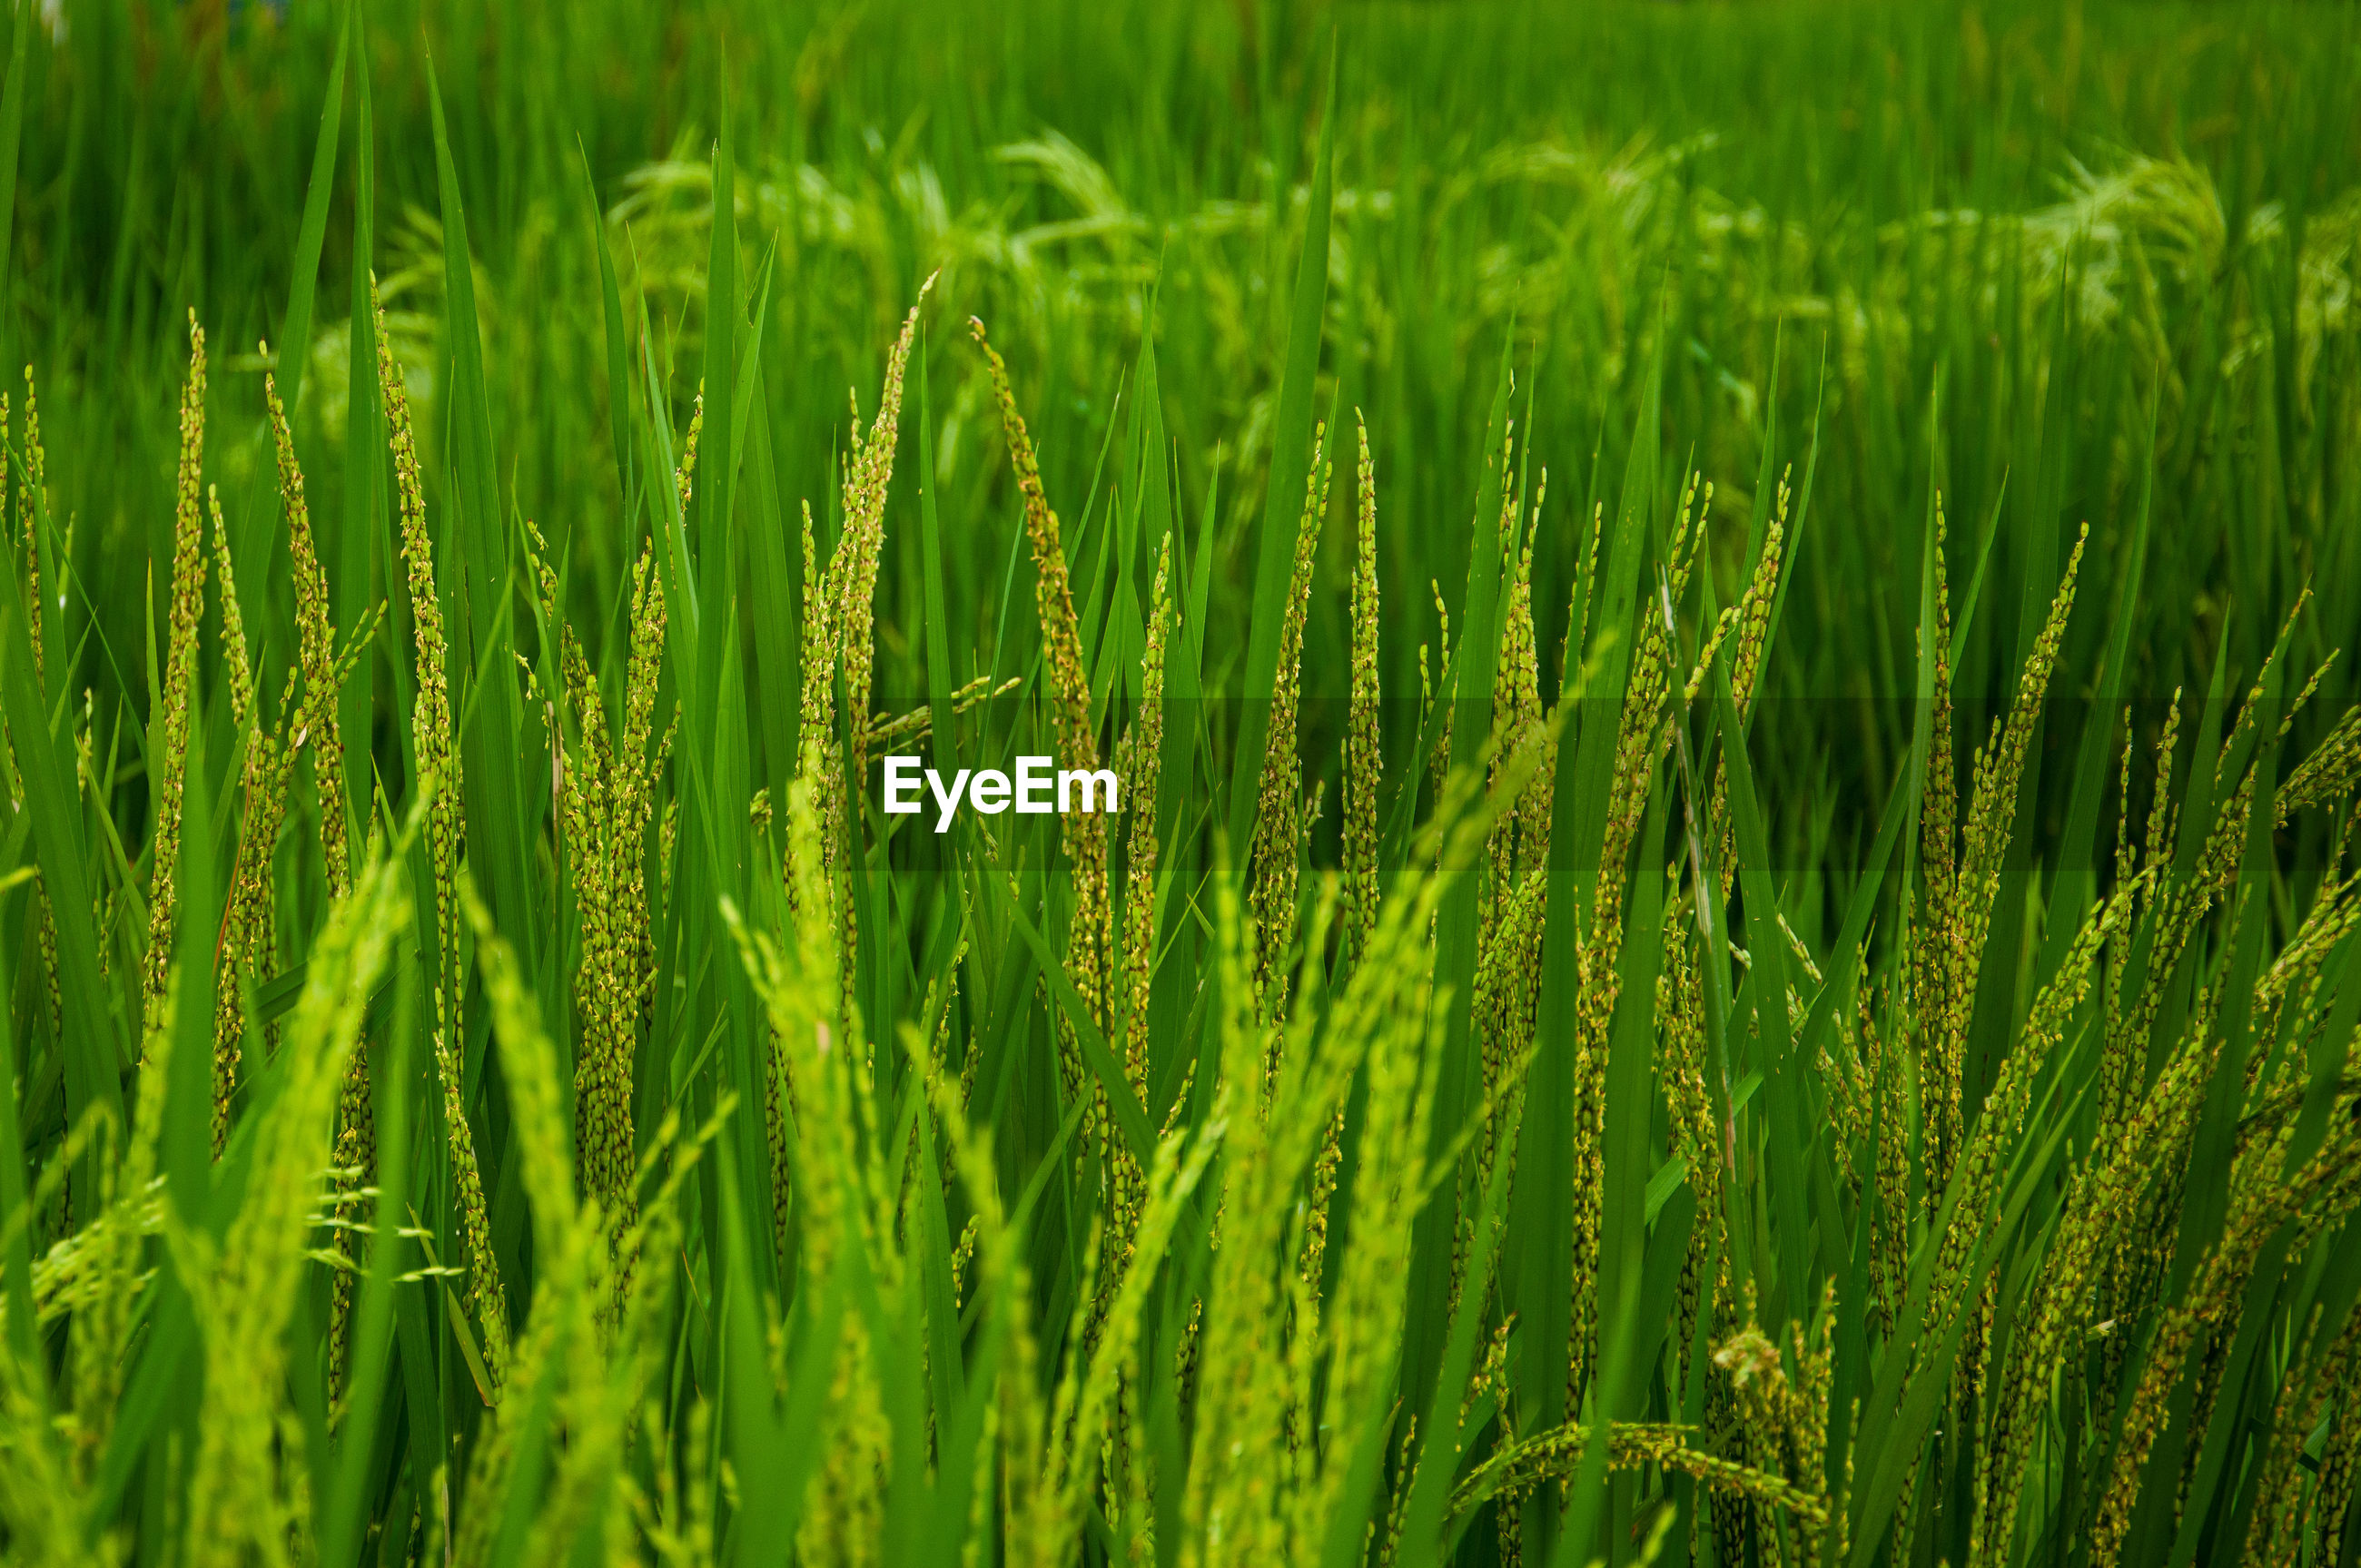 FULL FRAME SHOT OF RICE FIELD